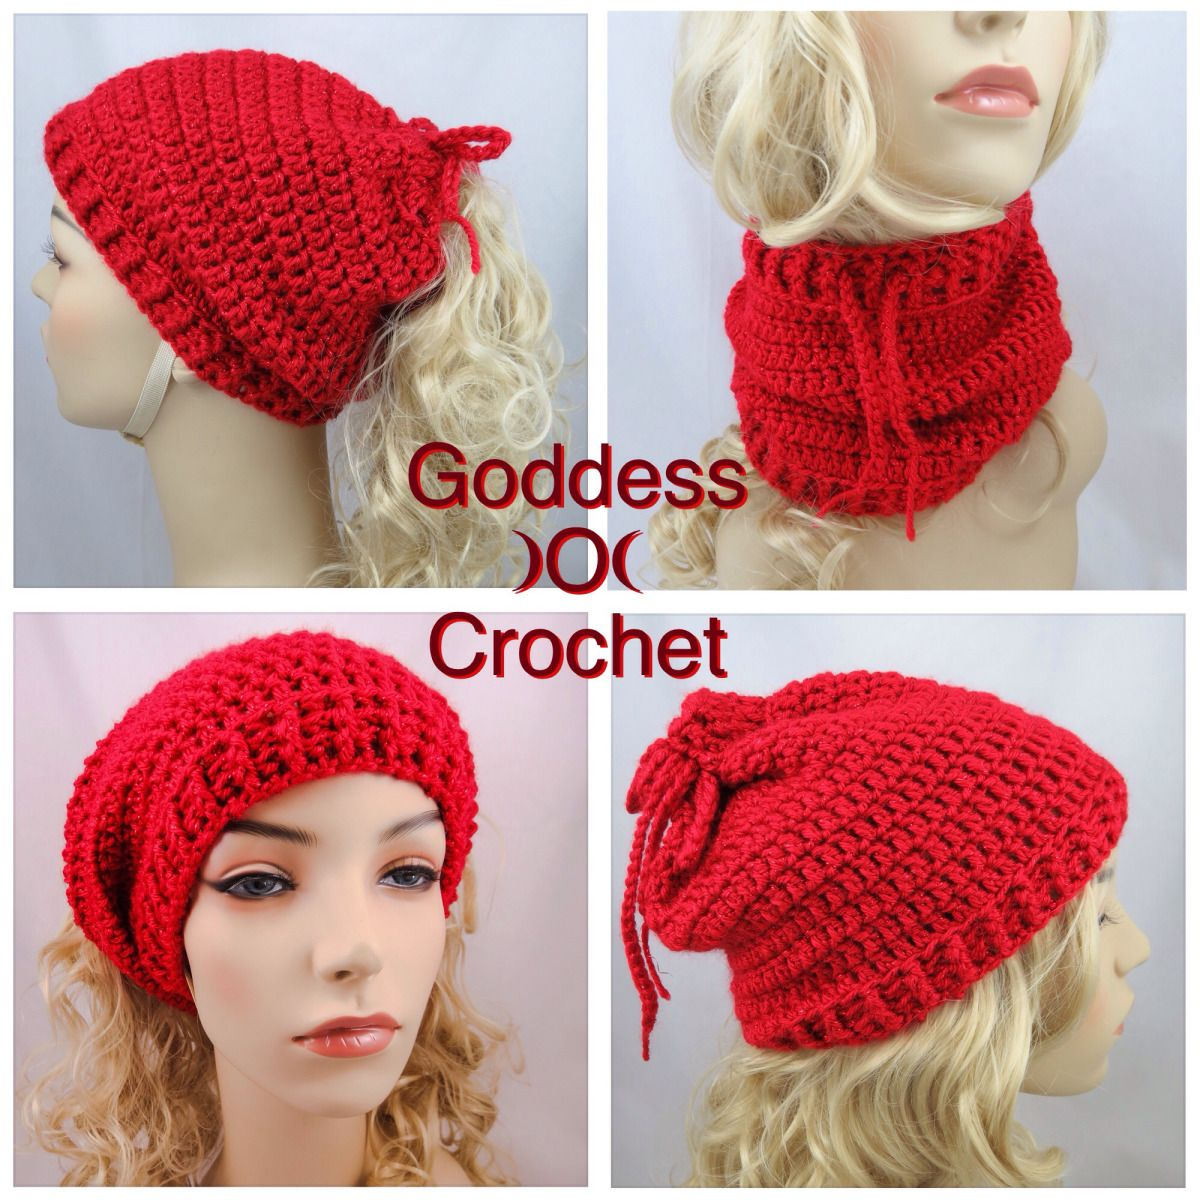 Ponytail hat neckwarmer free crochet pattern free crochet ponytail hat neckwarmer free crochet pattern bankloansurffo Images